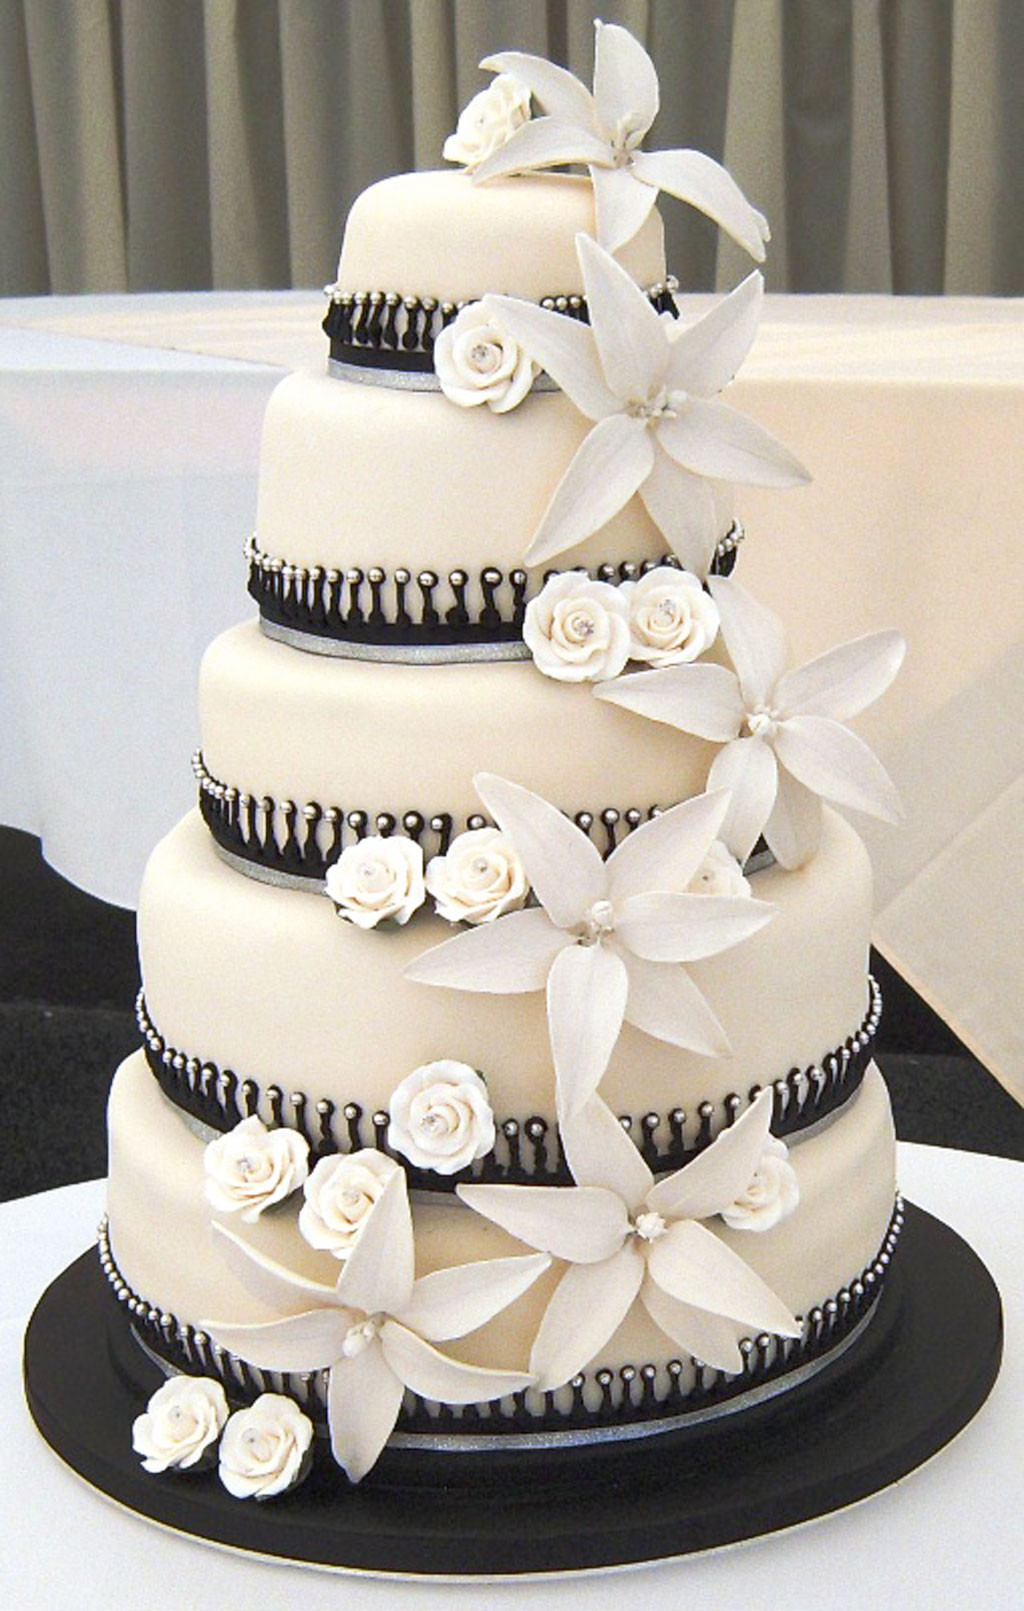 Cakes Designs For Wedding  Black White Wedding Cake Designs Wedding Cake Cake Ideas